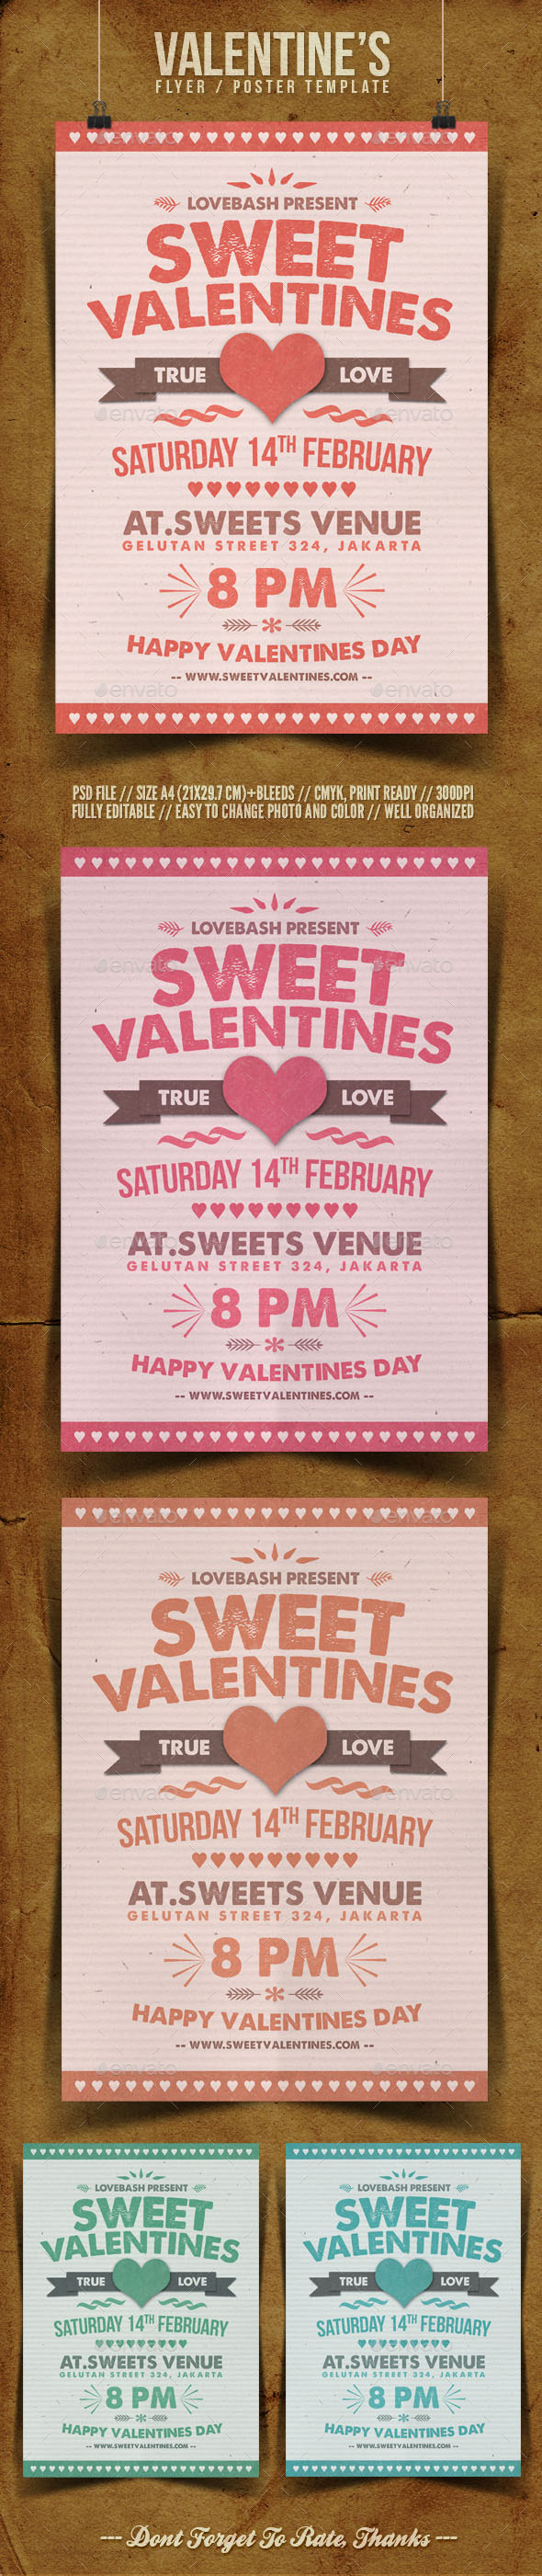 GraphicRiver Valentine s Day Flyer Template 10119347